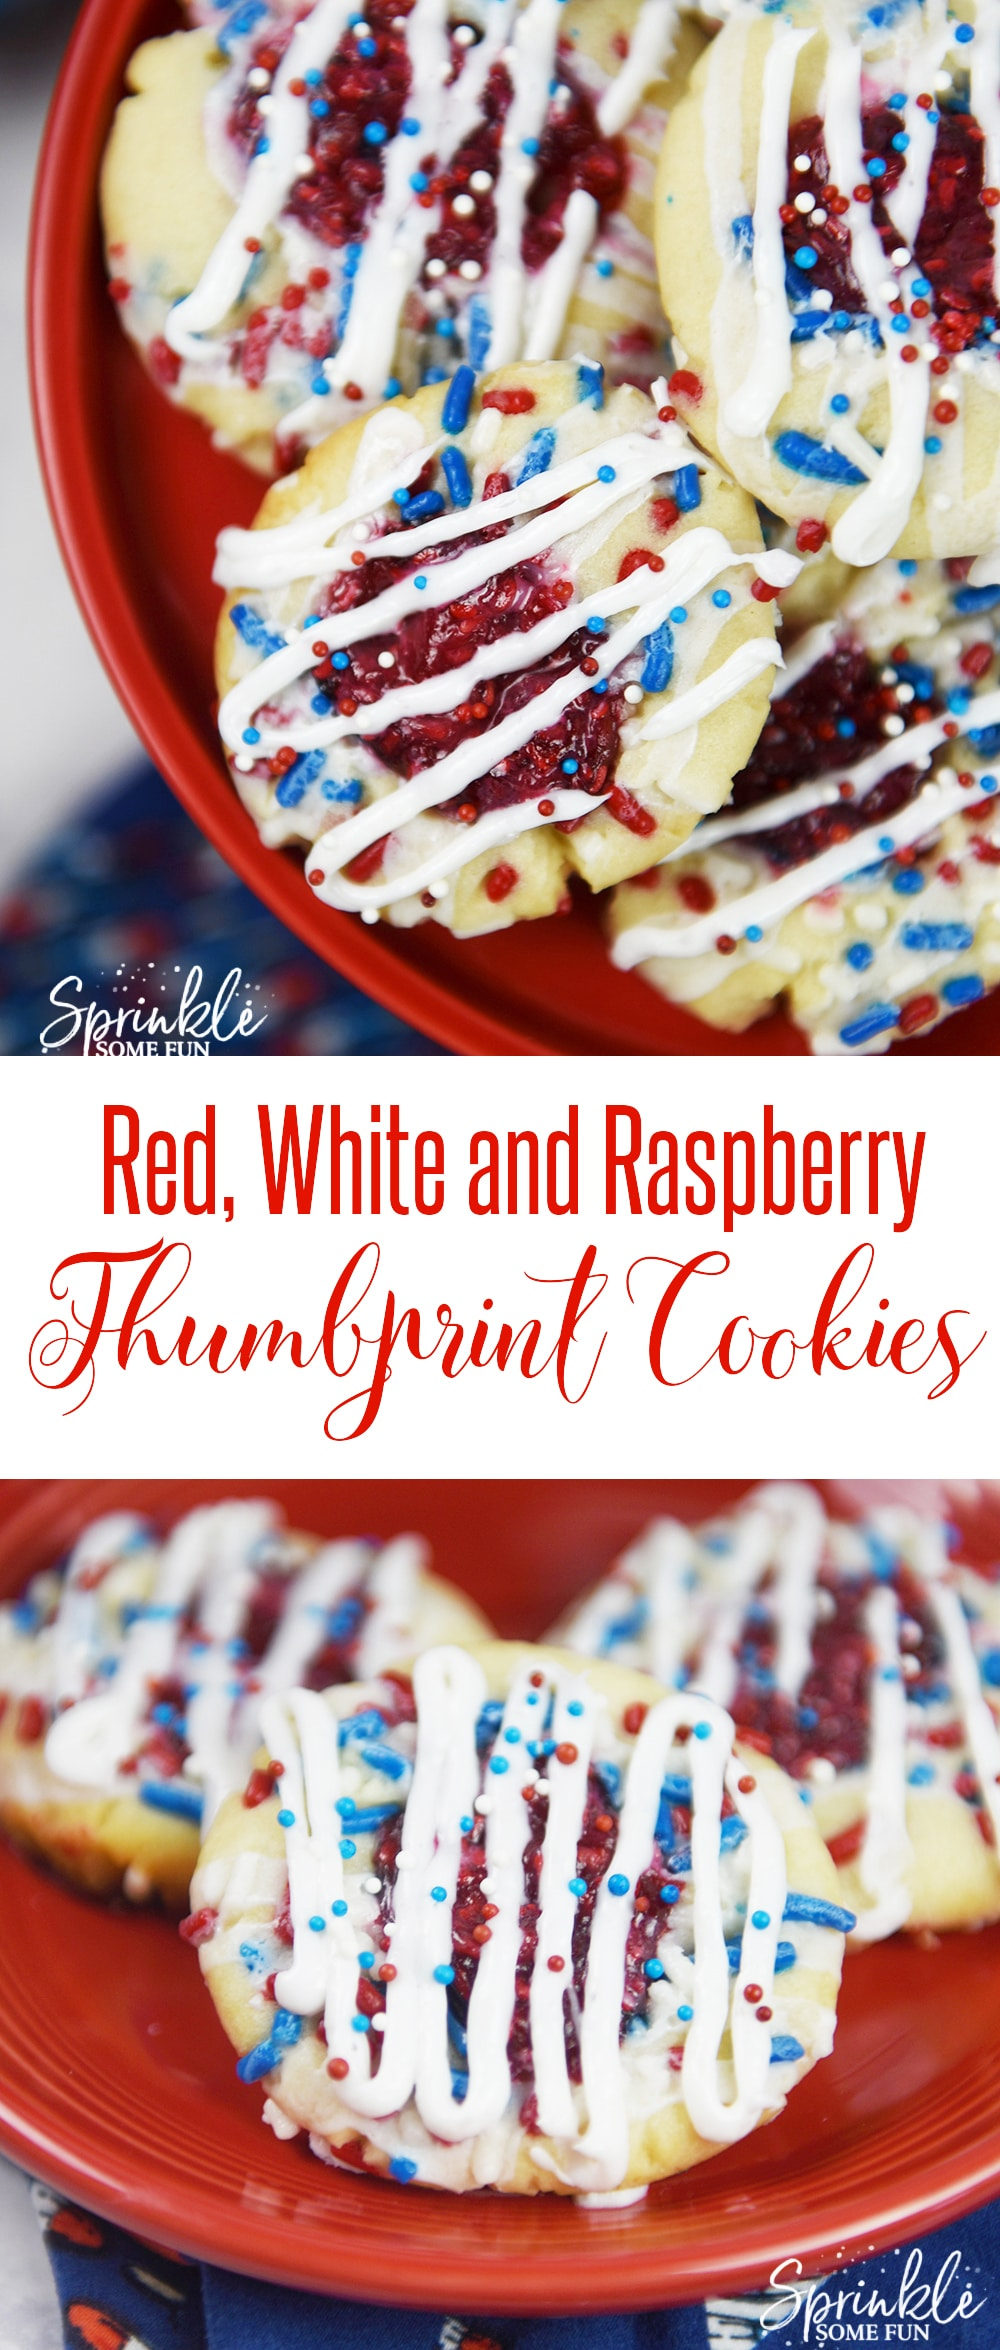 These Red, White, and Raspberry Thumbprint Cookies are a new favorite treat of ours because they are both sweet and tangy! #dessert #cookies #americanholiday #4ofjuly #redwhiteandblue #raspberries #thumbprintcookies #sweets